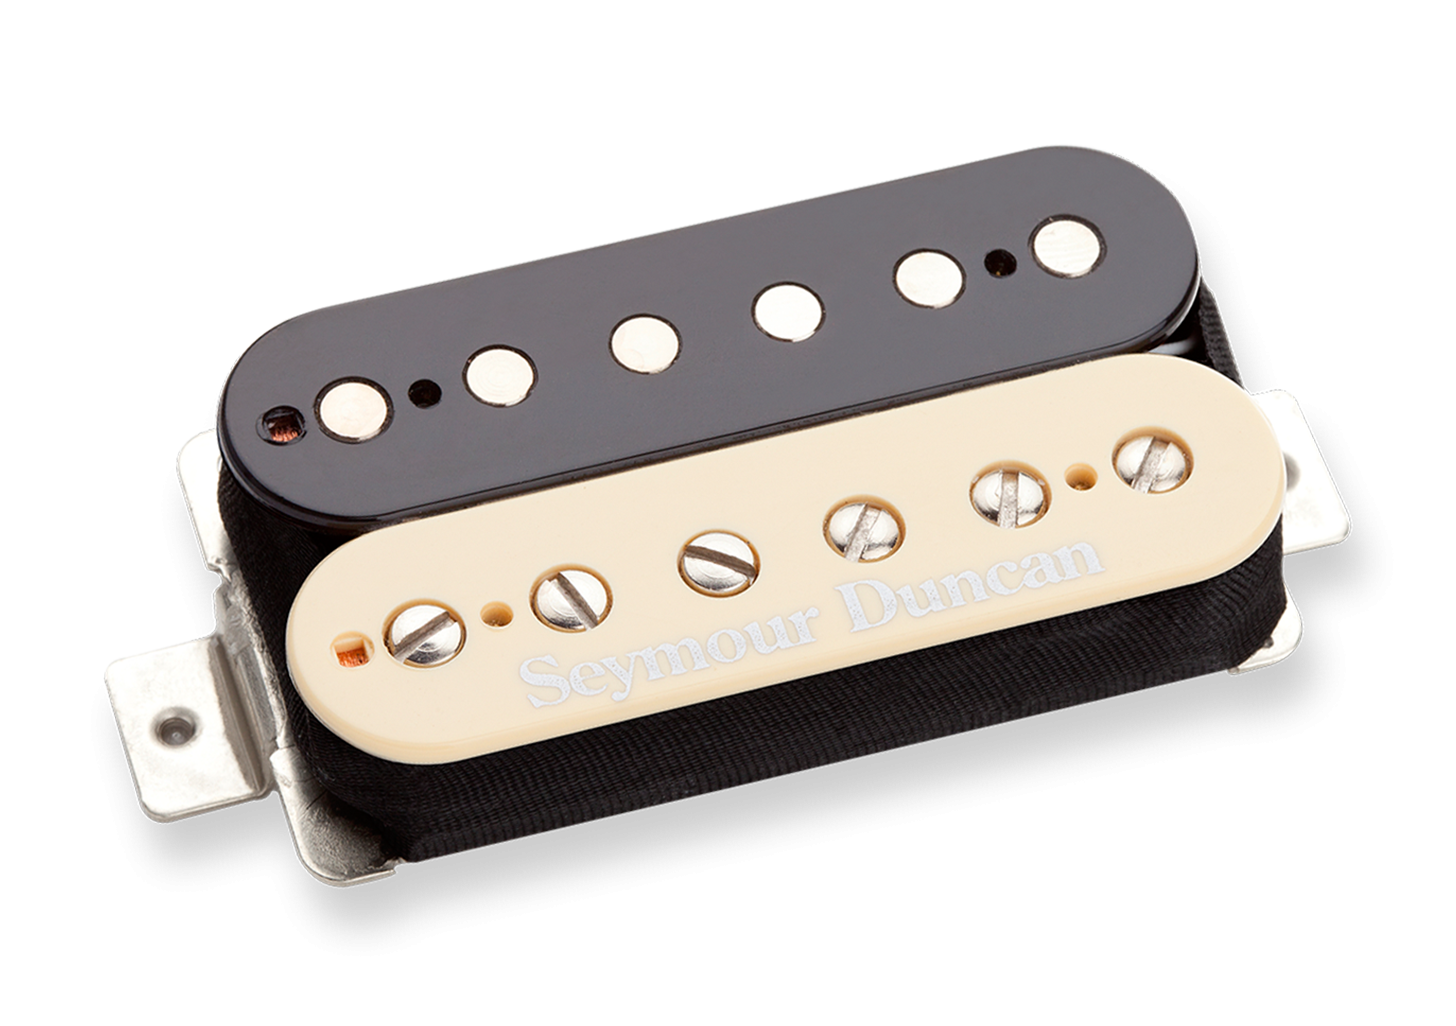 Seymour Duncan Whole Lotta Humbucker - SH-18B Bridge Zebra